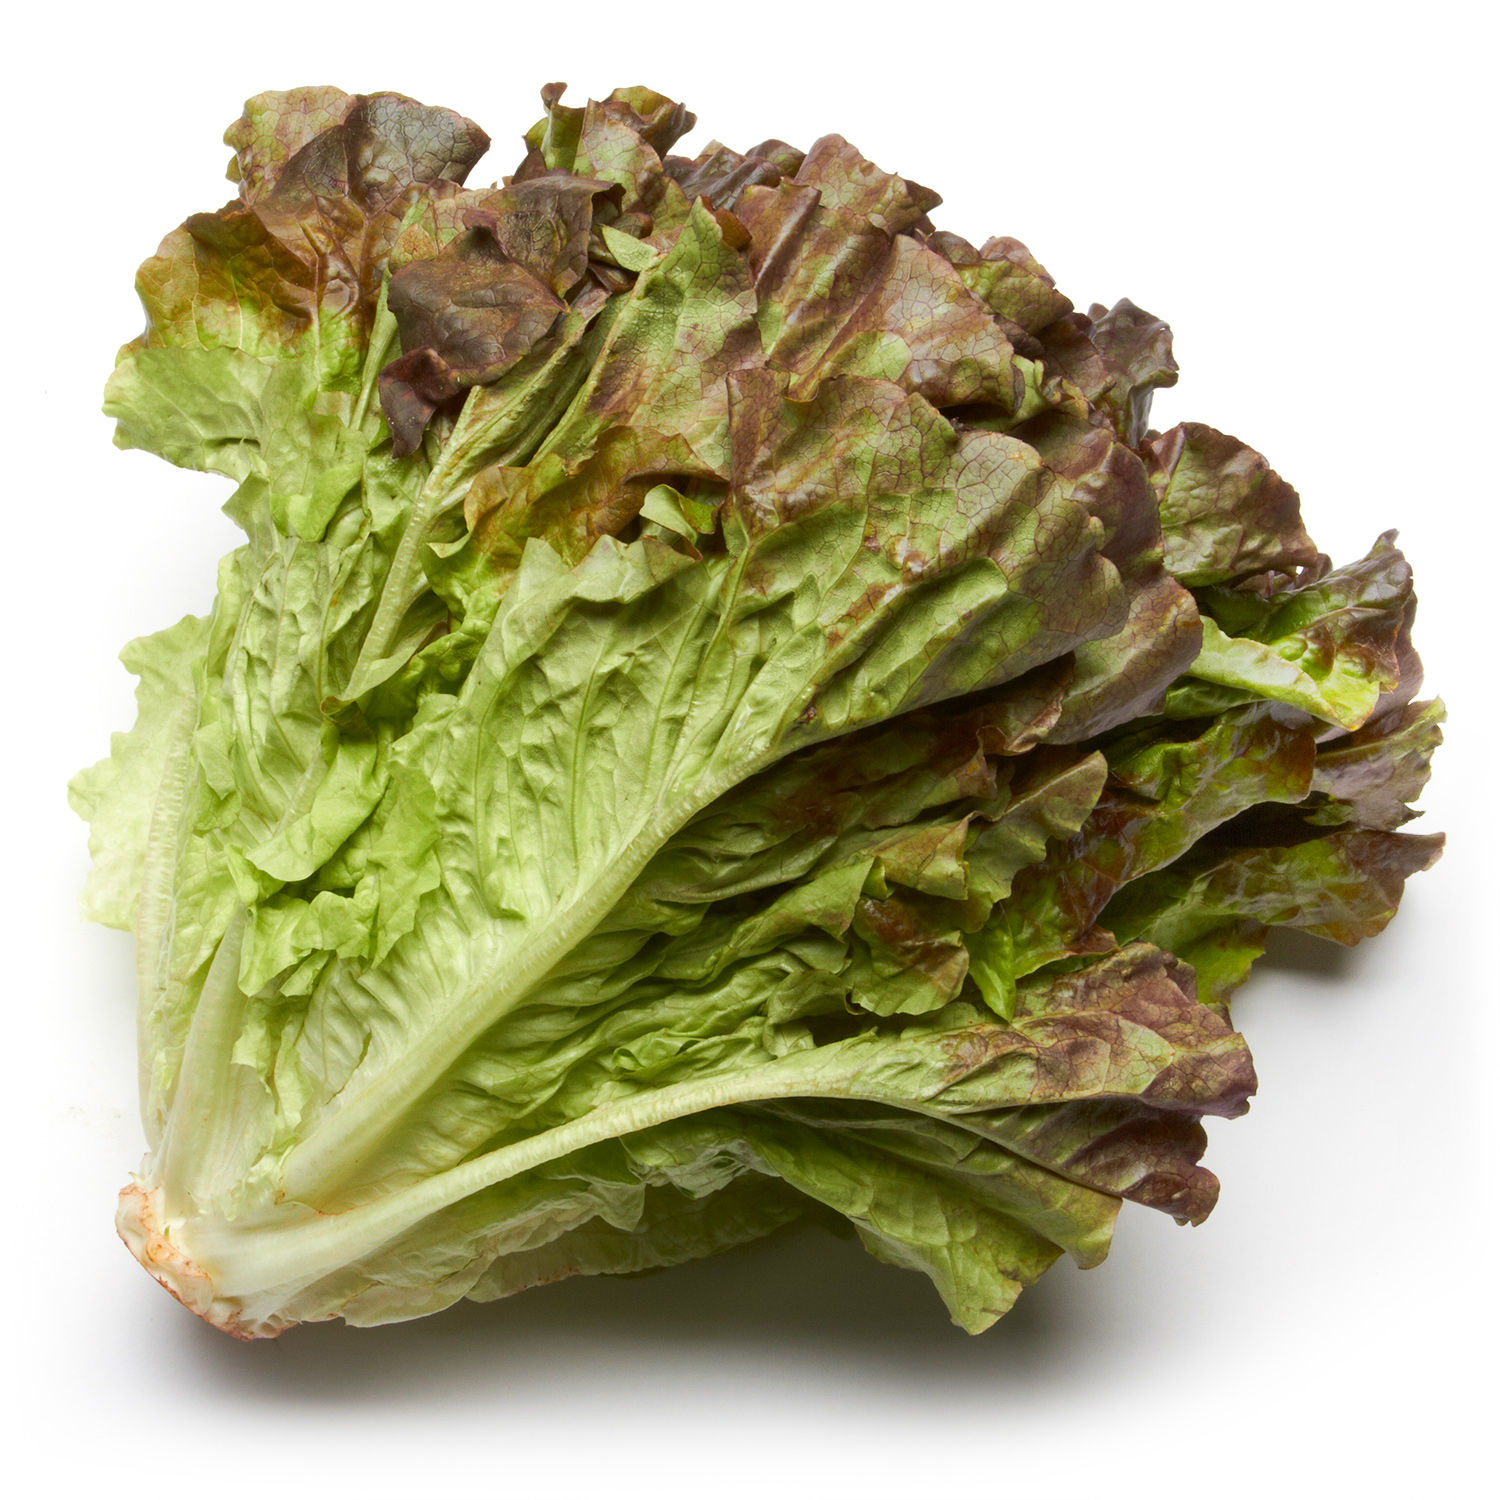 Red Leaf Lettuce, Health Benefits and Nutritional Value